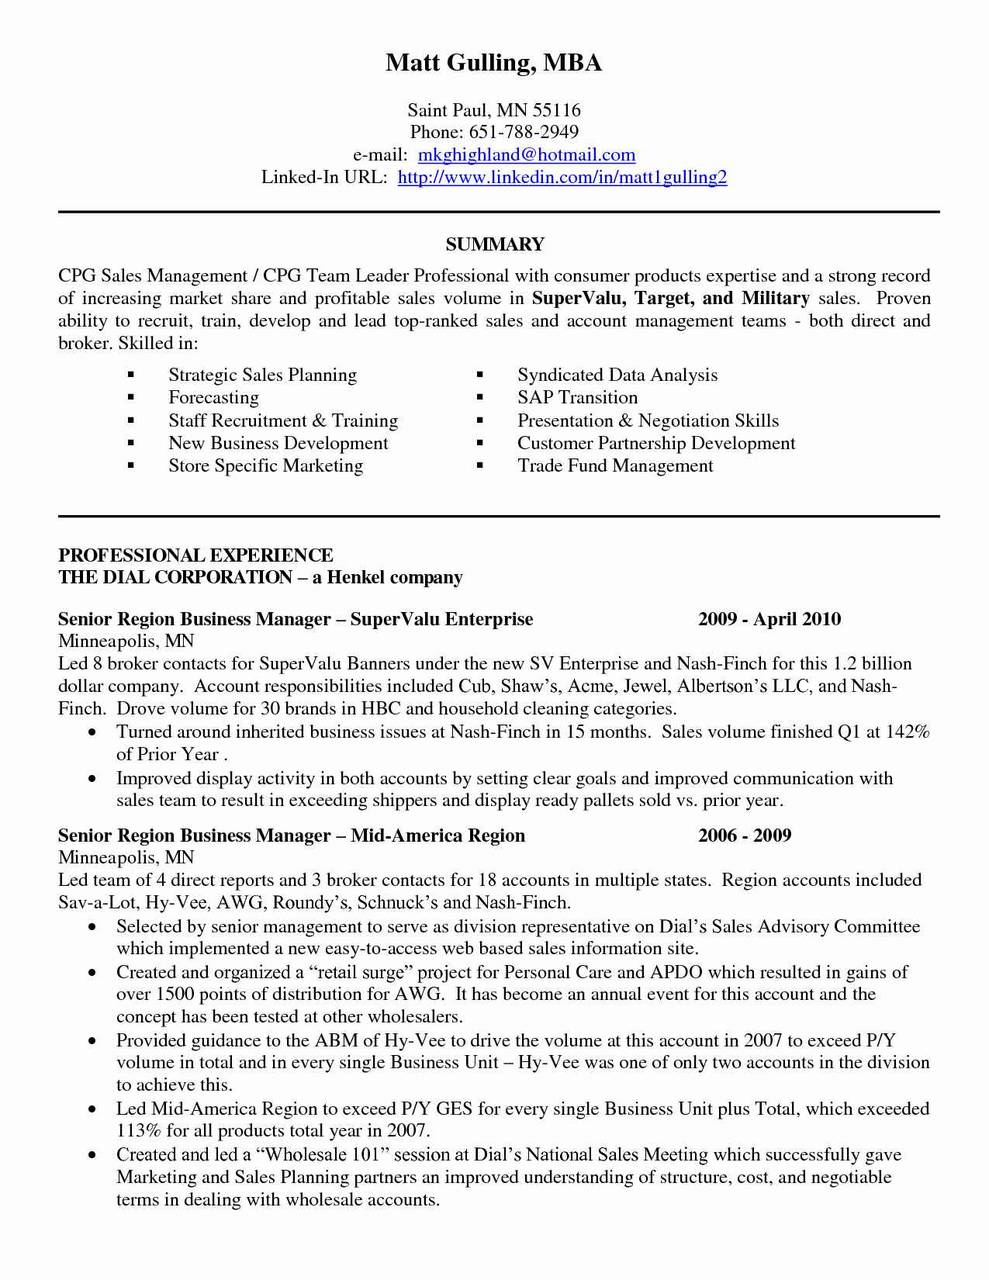 Wall Street Oasis Resume Template - Tar Ed Resume Template Tar Ed Resume Template Word Lovely